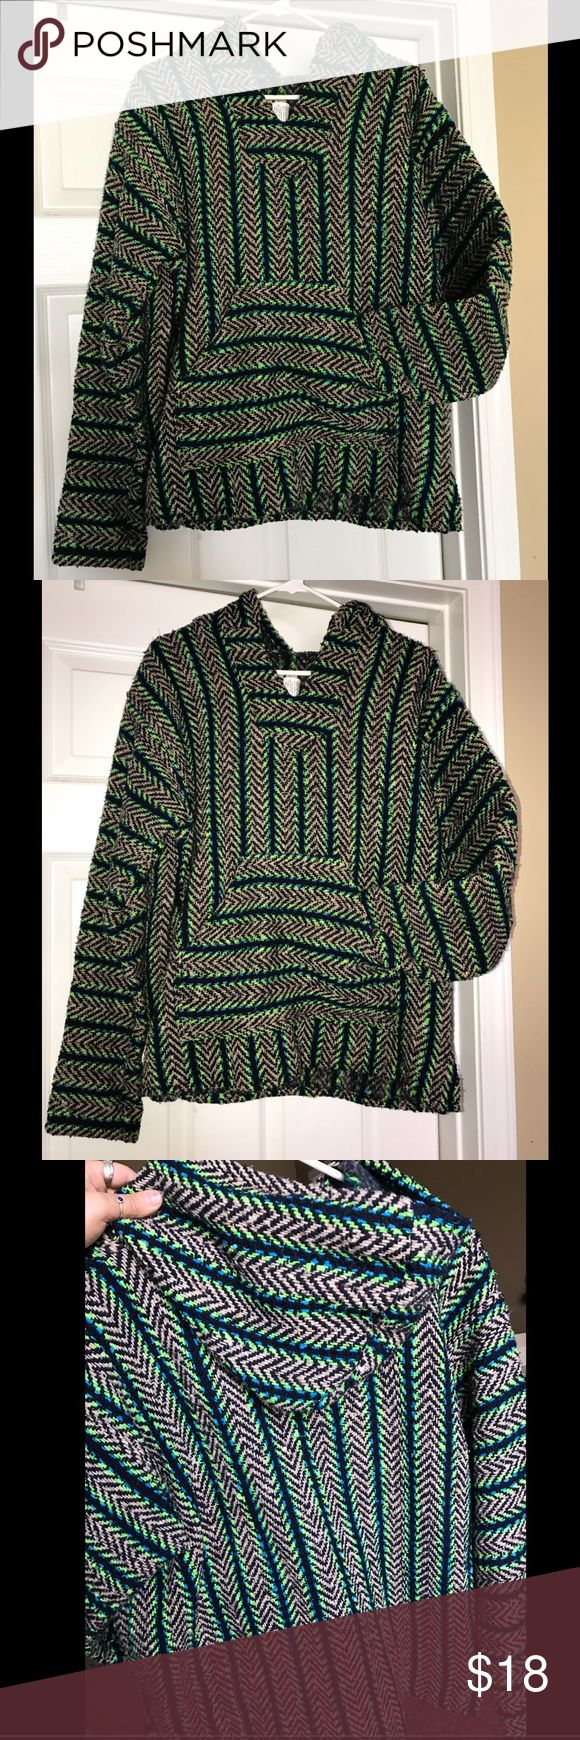 Baja Joe drug rug sweatshirt hoodie The inside is softer than the outside (refer to the picture with the tag). Great condition. Size small but can definitely fit a medium and large women's size too. Awesome green, blue, black, and beige. Feel free to make me an offer and bundle! Tops Sweatshirts & Hoodies